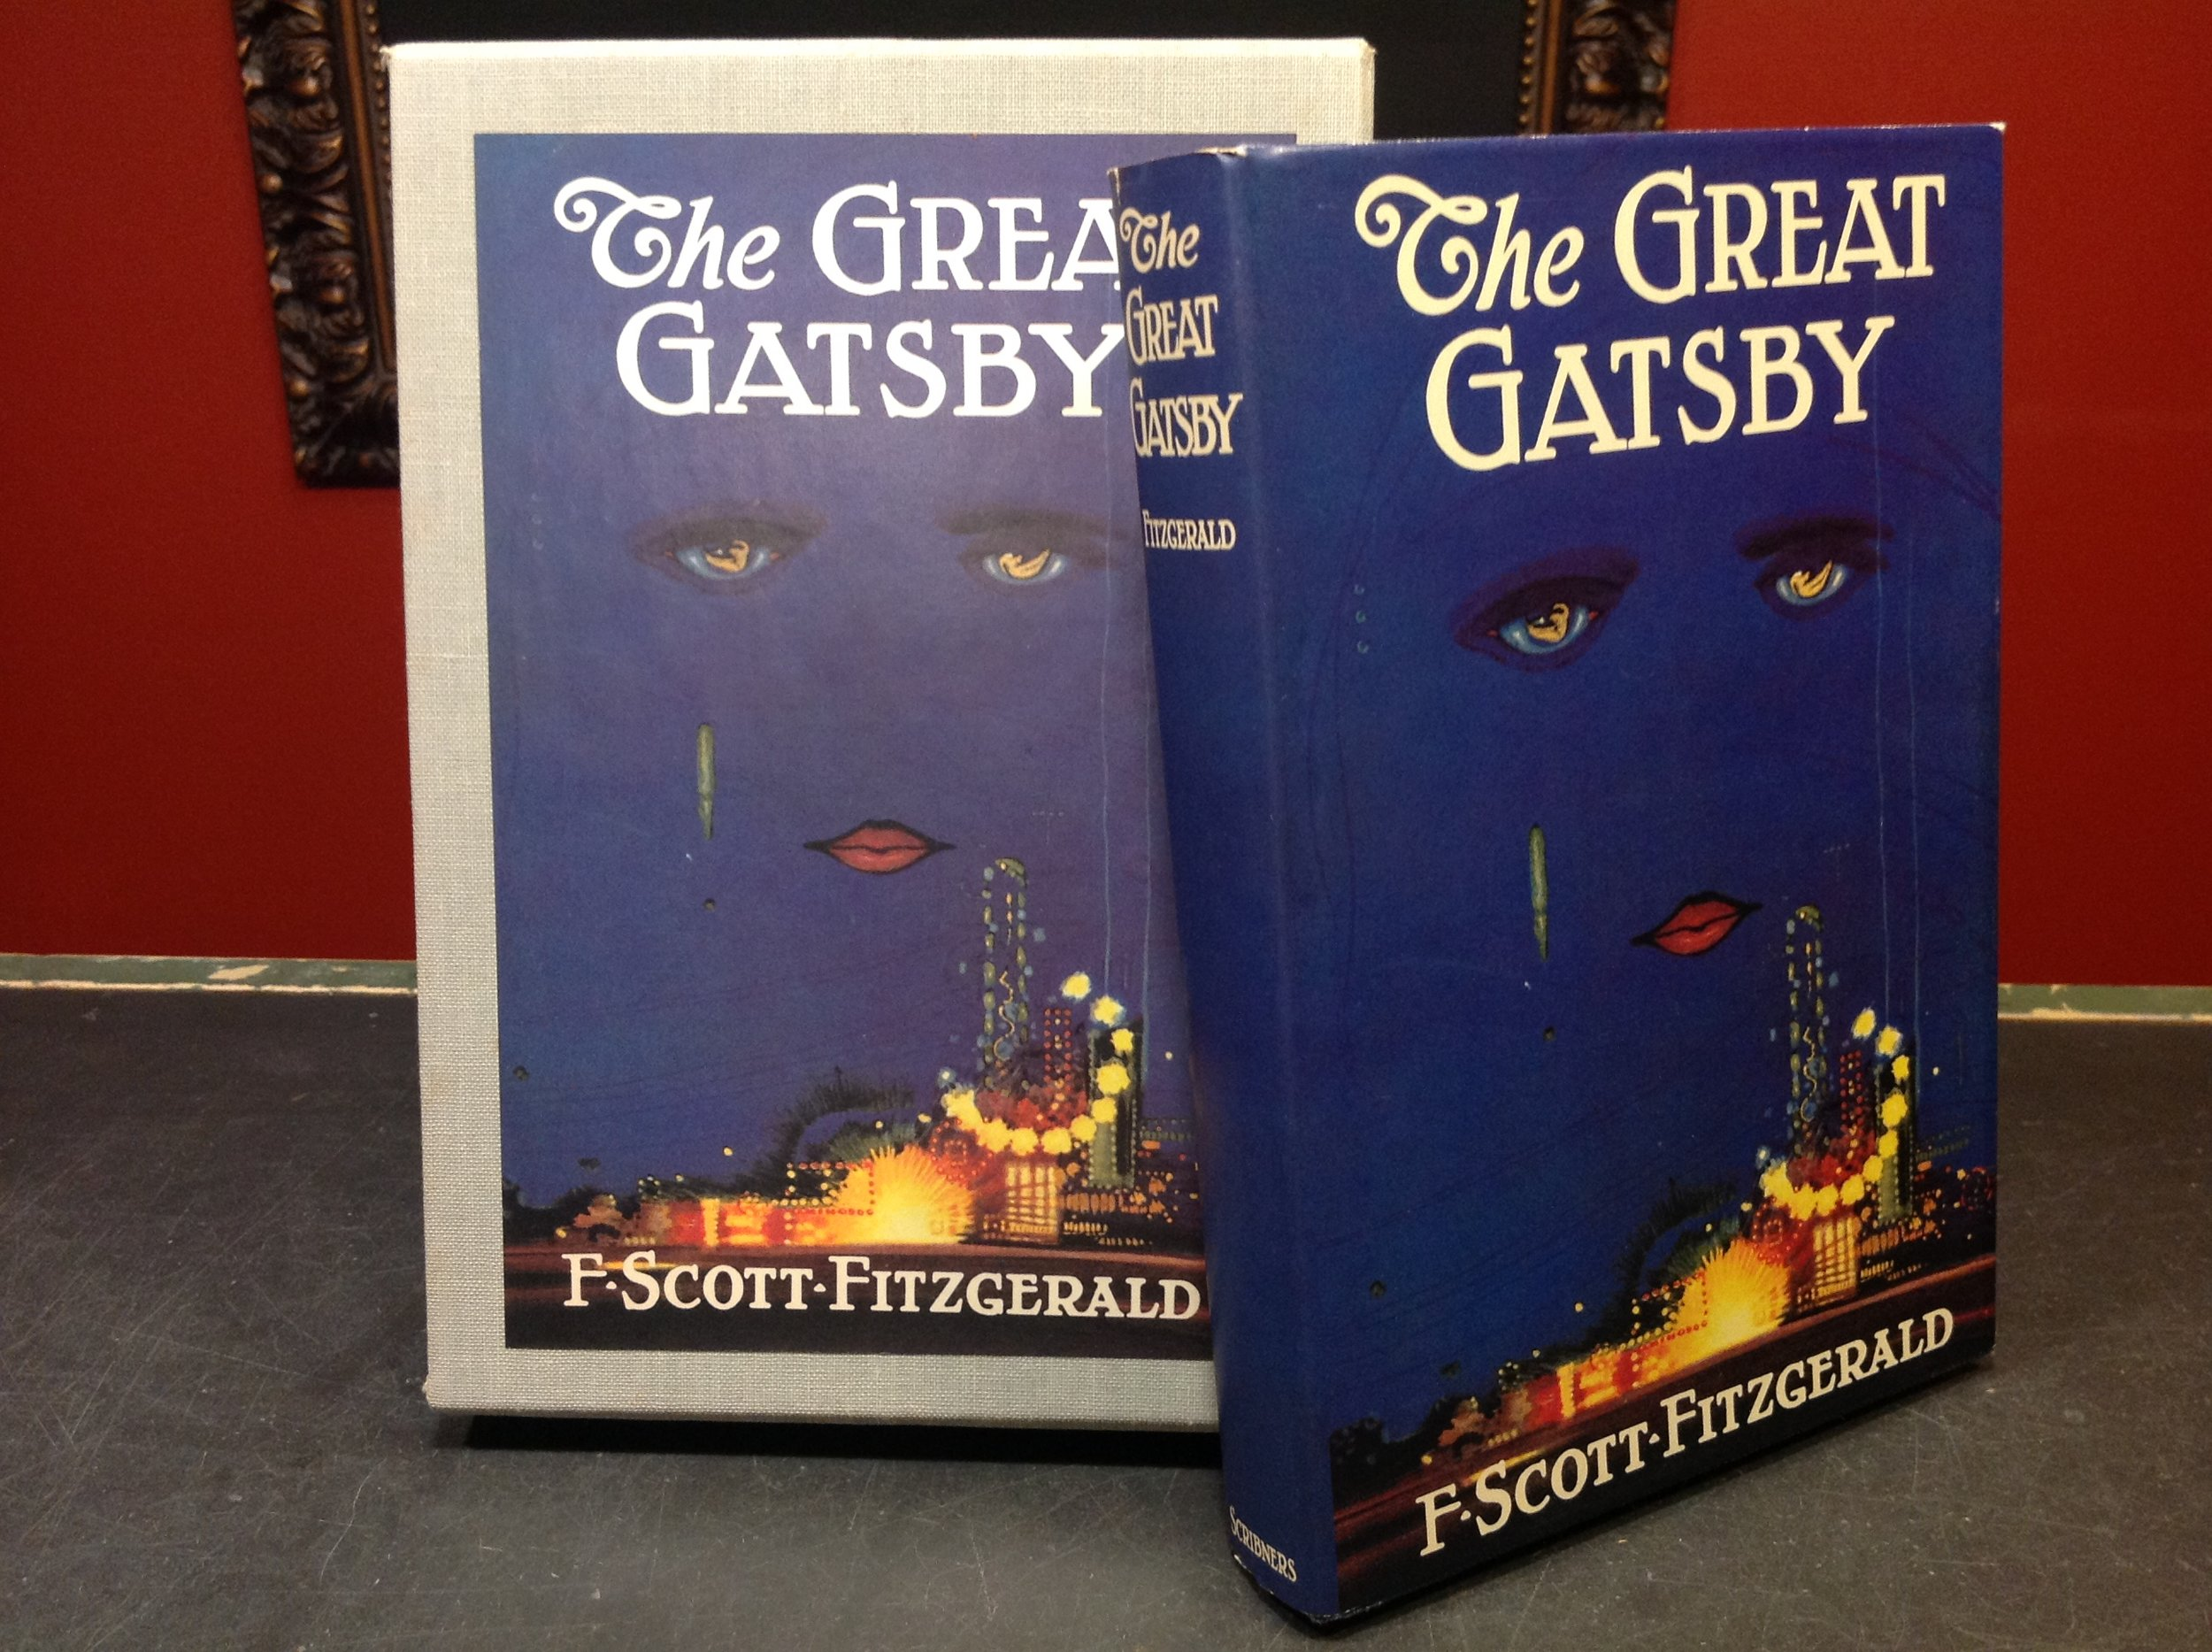 Great Gatsby by F. Scott Fitzgerald - First Printing of First Edition Library's edition; exact copy of the Gatsby first printing; in pictorial slipcase. Just one of a larger First Editions Library collection.